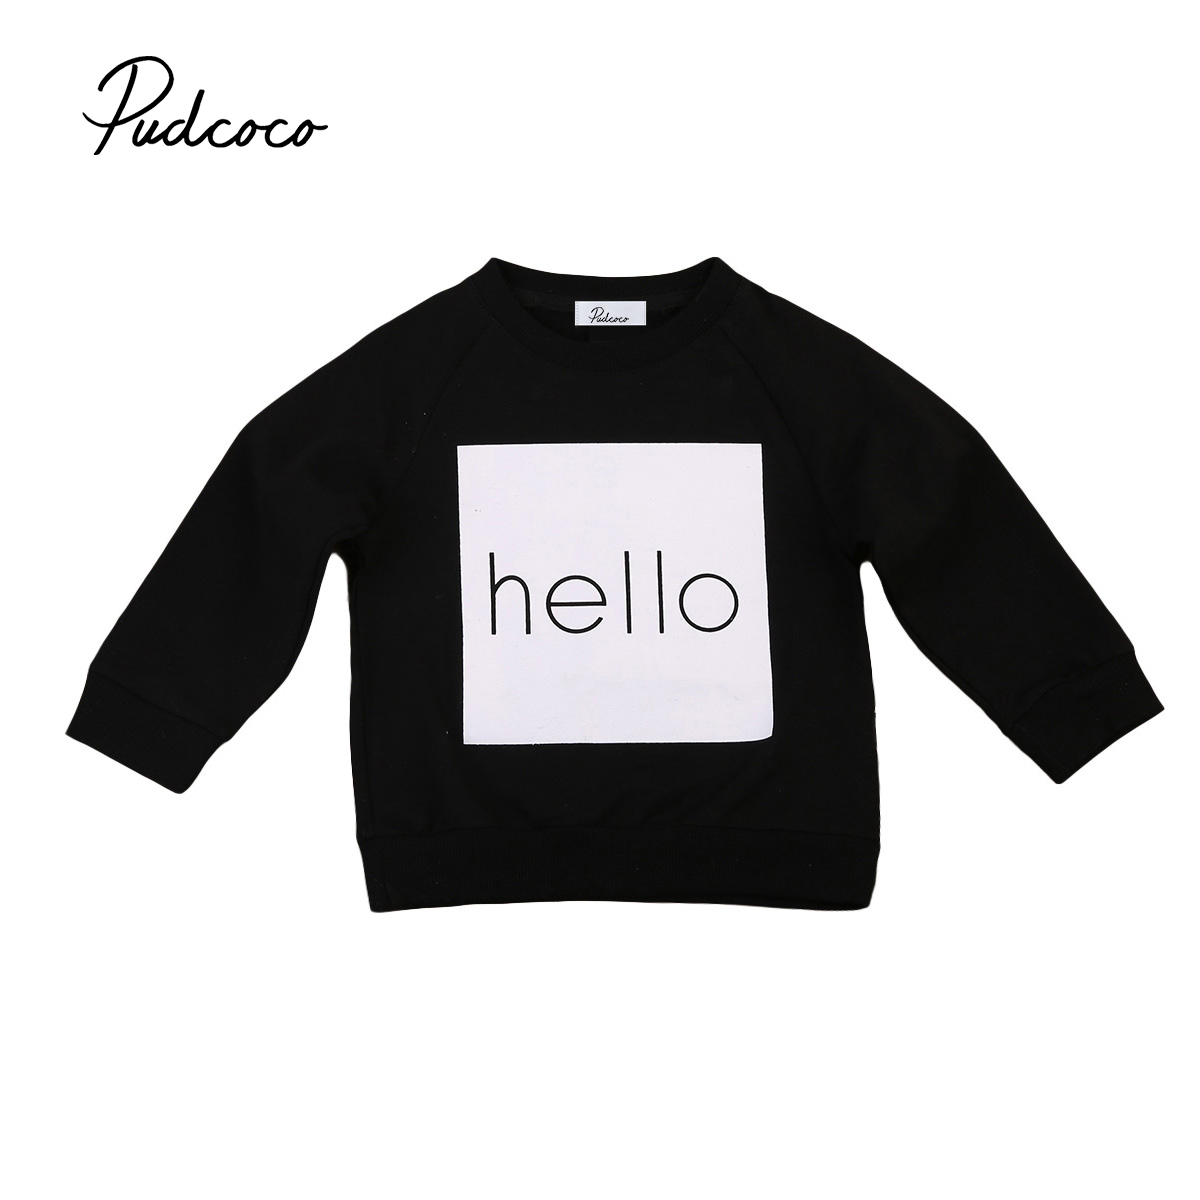 2017 New Autumn Sweatshirts Cute Infantil Baby Unisex Long Sleeve Toddler Boy Girl Letter Print Hoodies Warm O-Neck Sweatshirts